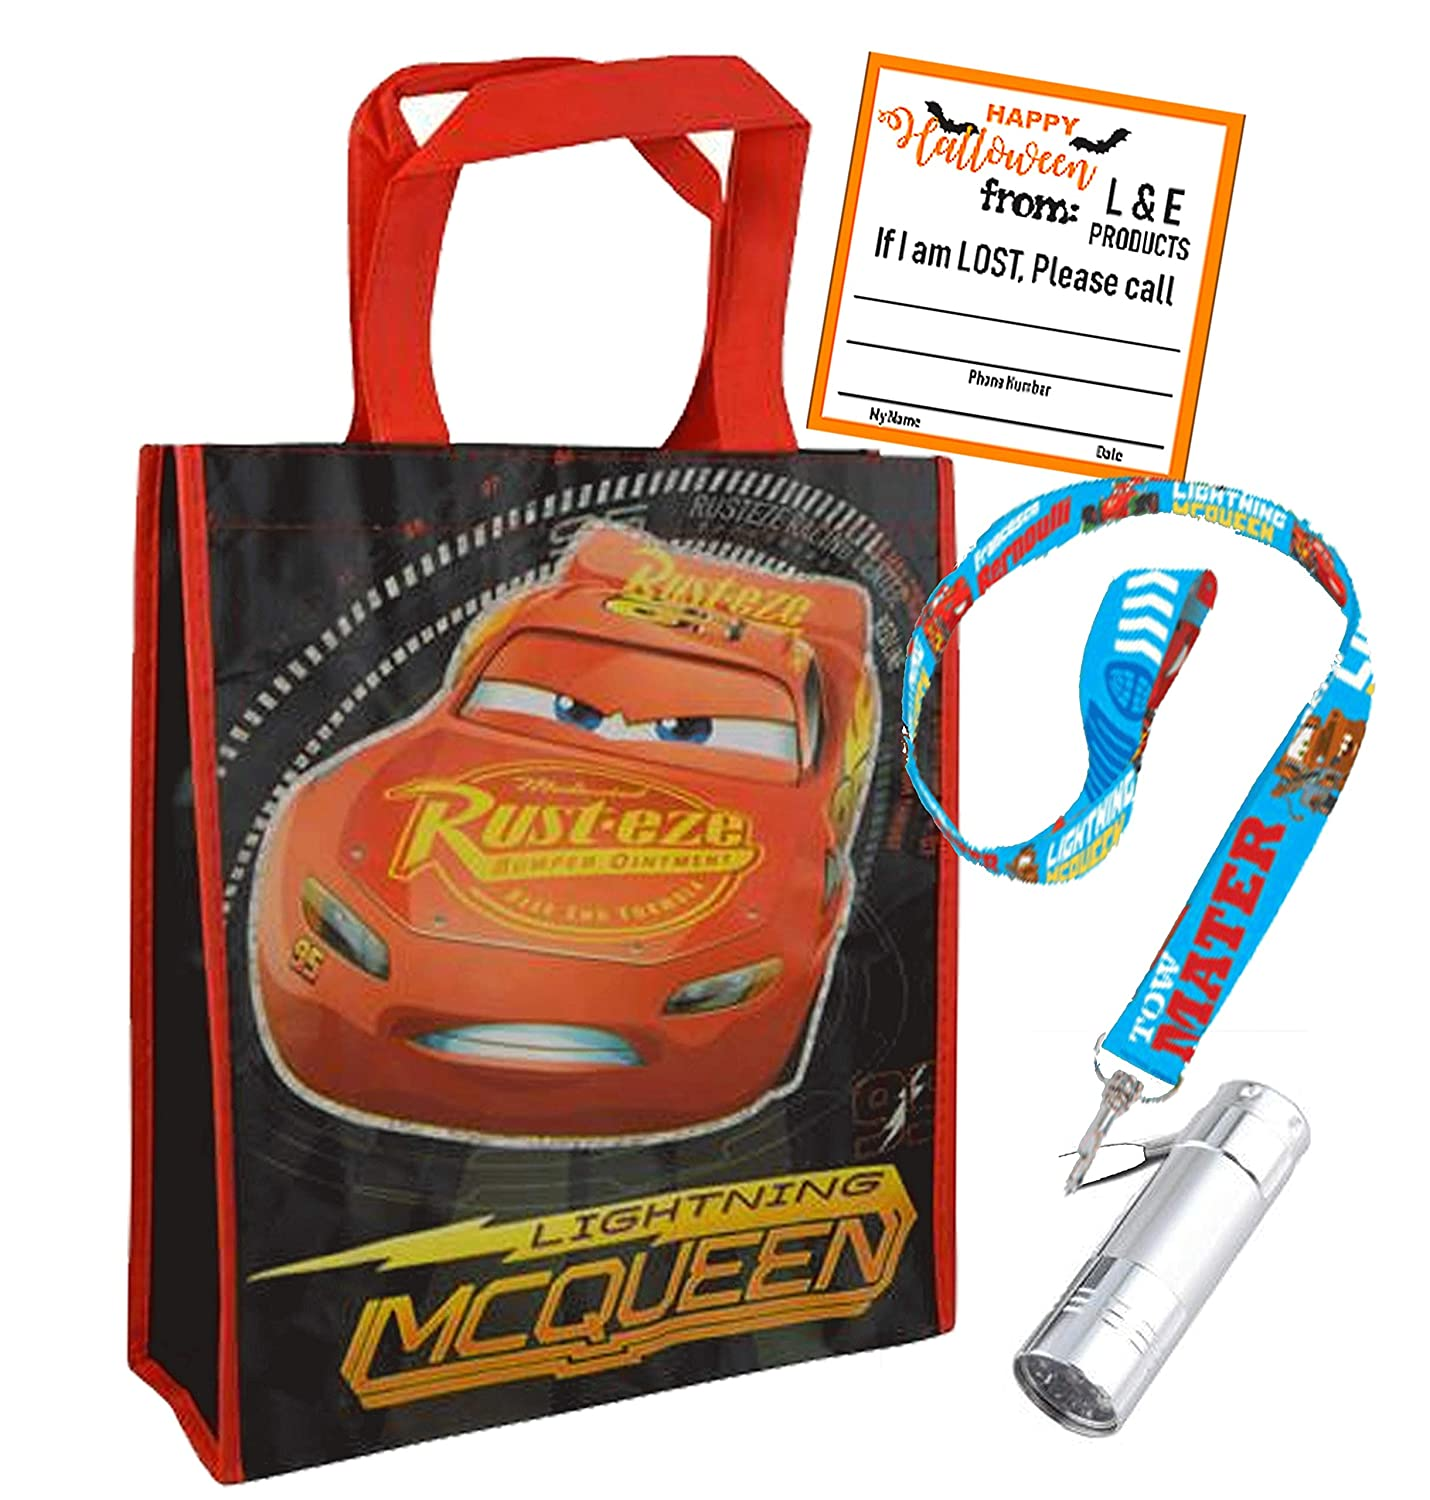 Cars Lightning McQueen Medium Sized Halloween Trick or Treat Loot Bag /& Lanyard with Attached LED Safety Flashlight PlusIf Im Lost Sticker! !